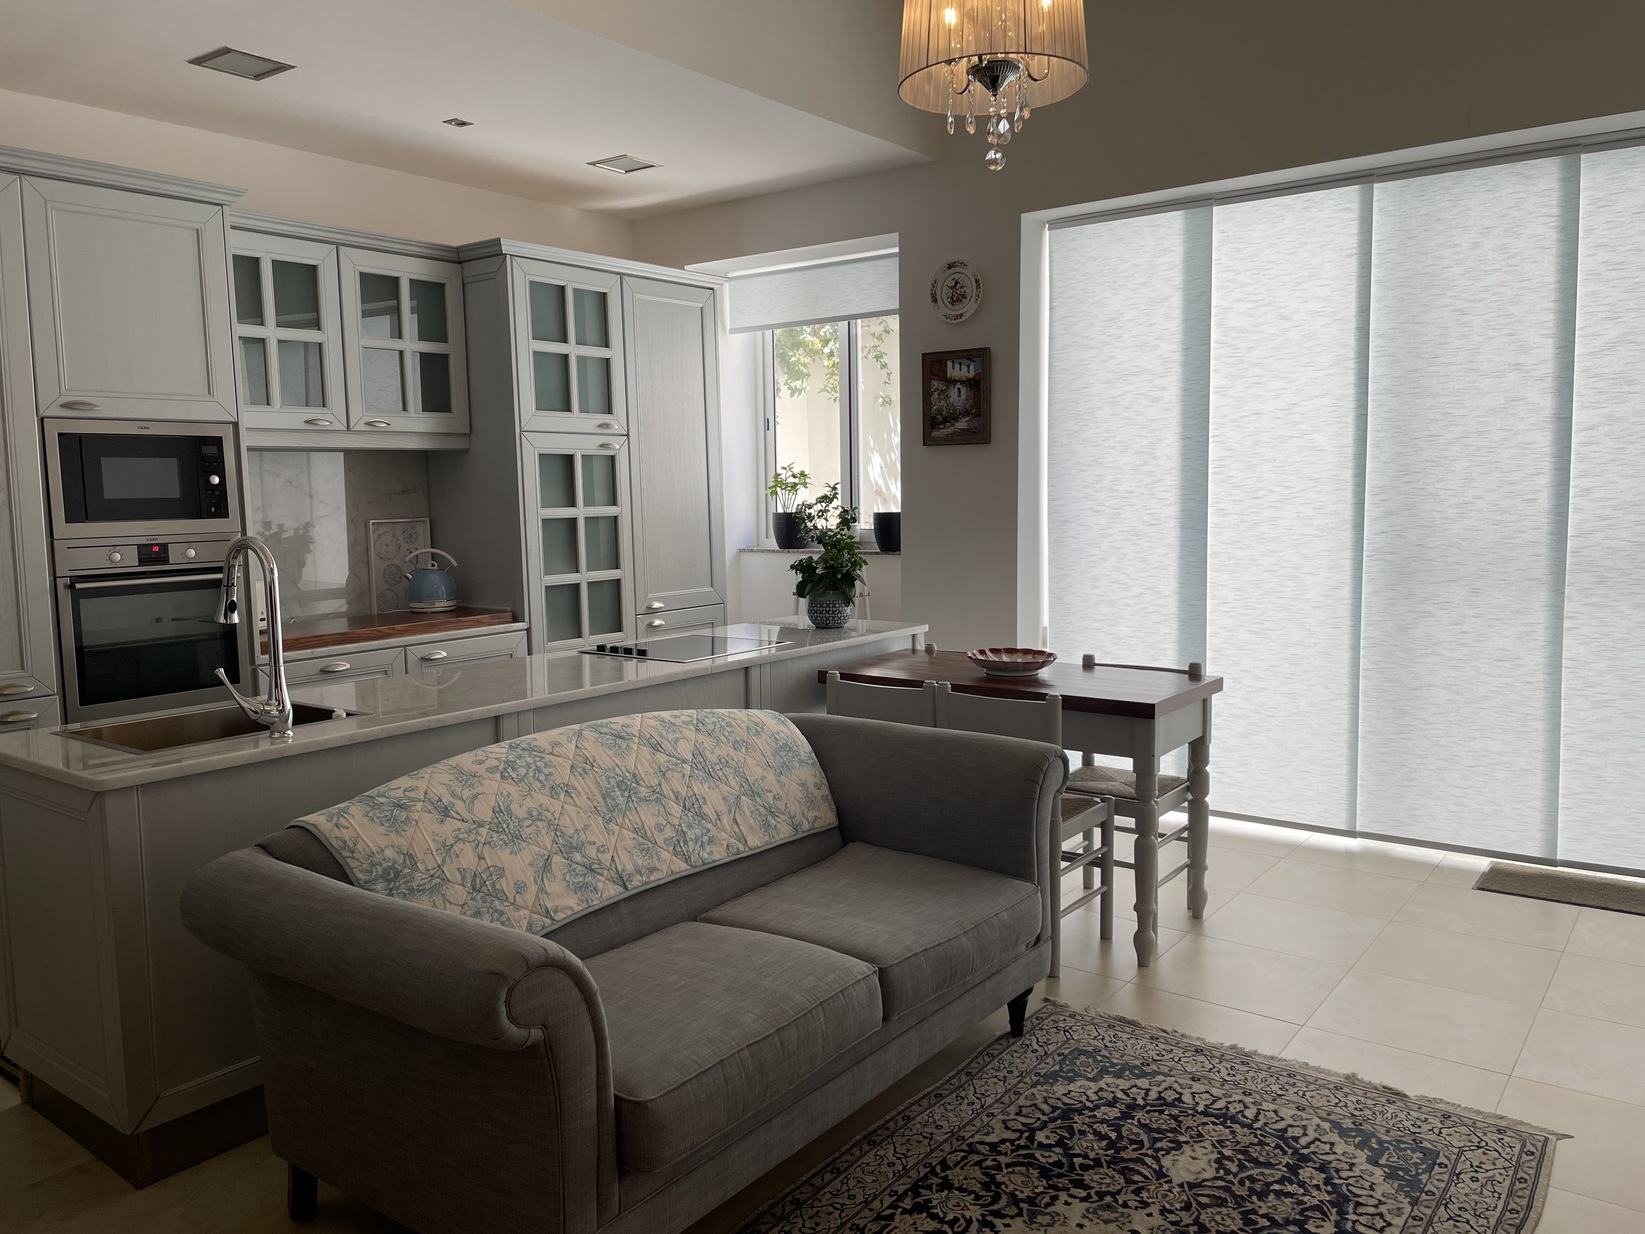 3 bed Town House For Sale in Sliema, Sliema - thumb 5